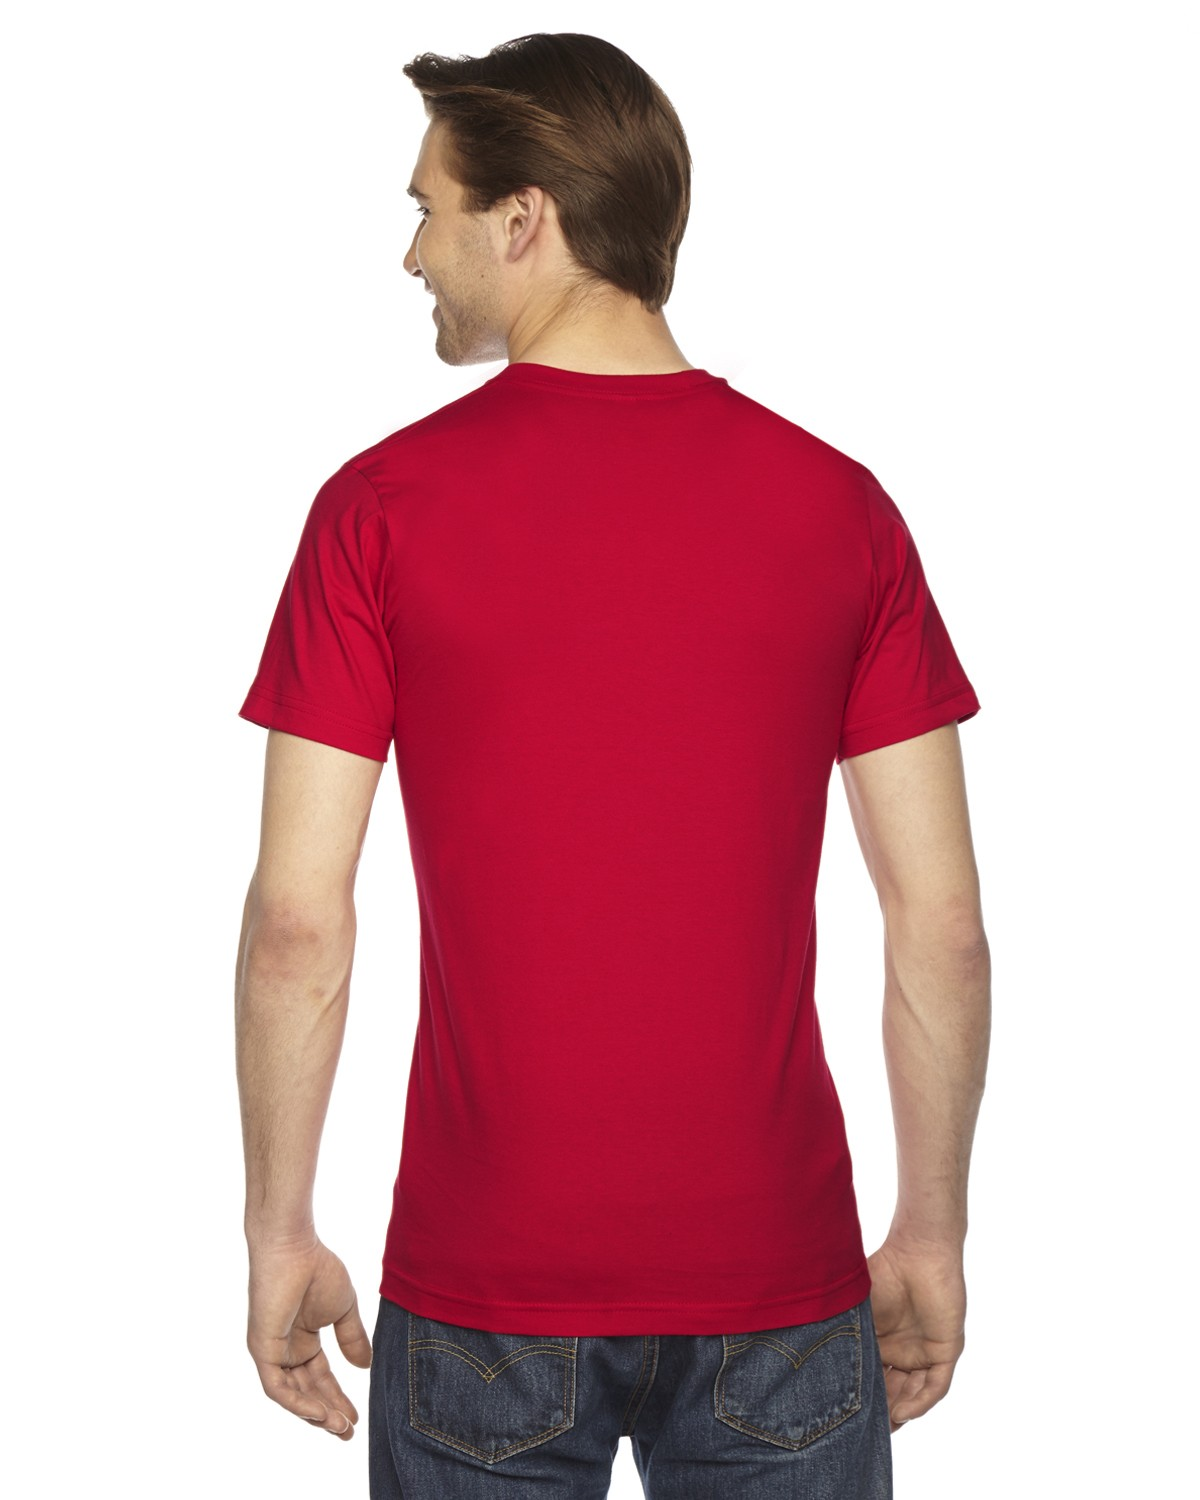 2001 American Apparel RED